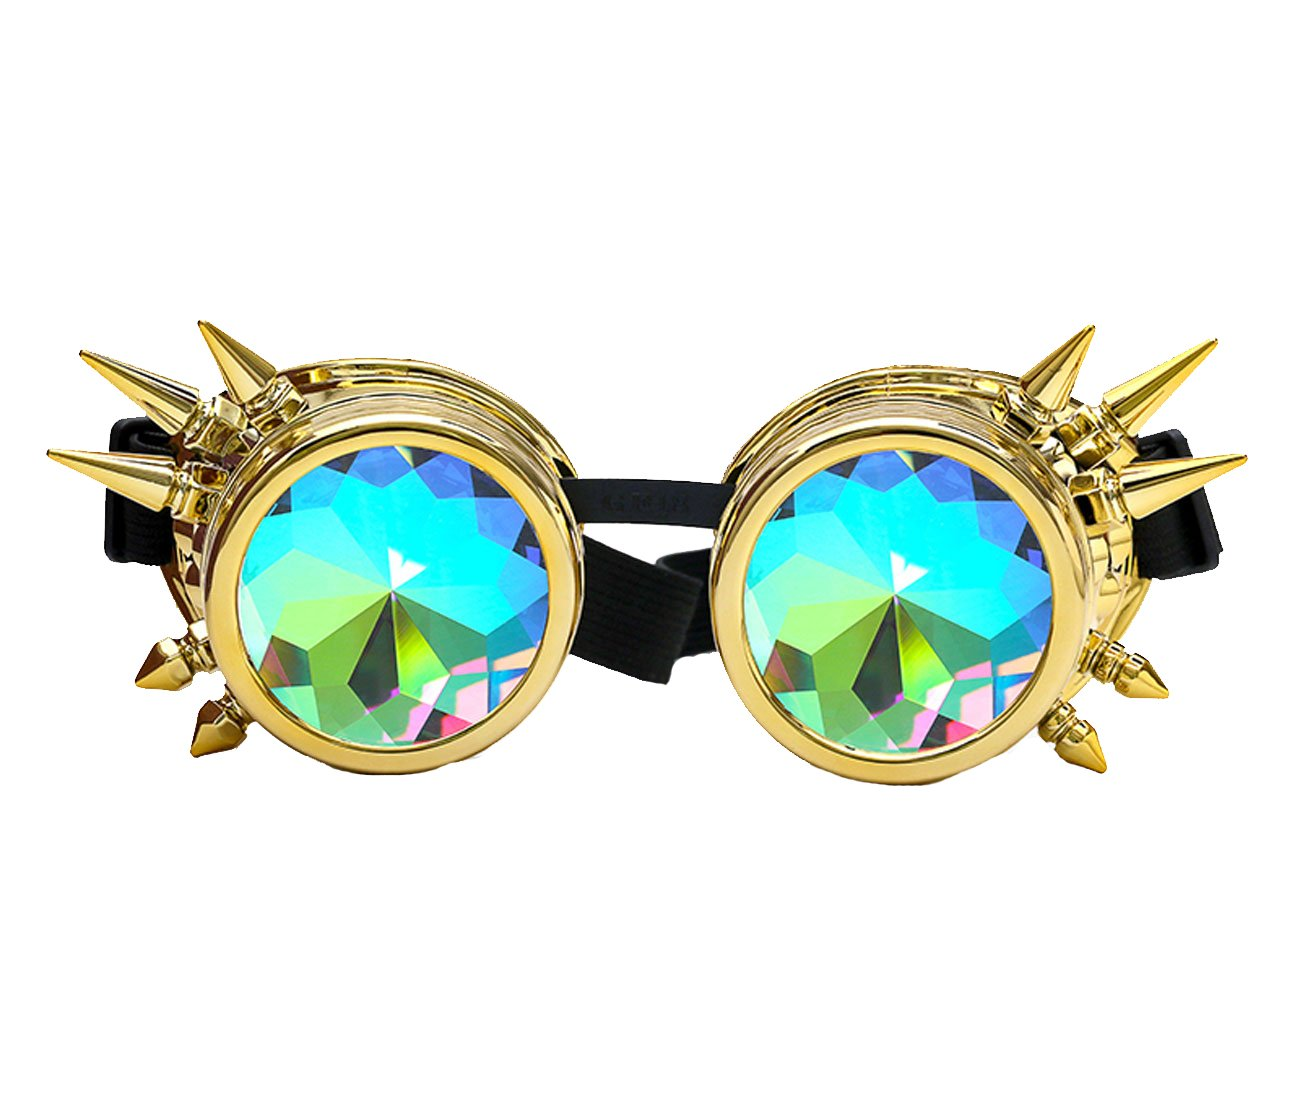 Amazon, Kaleidoscope Rave Rainbow Crystal Lenses Steampunk Goggles Spike Halloween (One Size-Adjustable head band, Golden) by DODOING (Image #2)